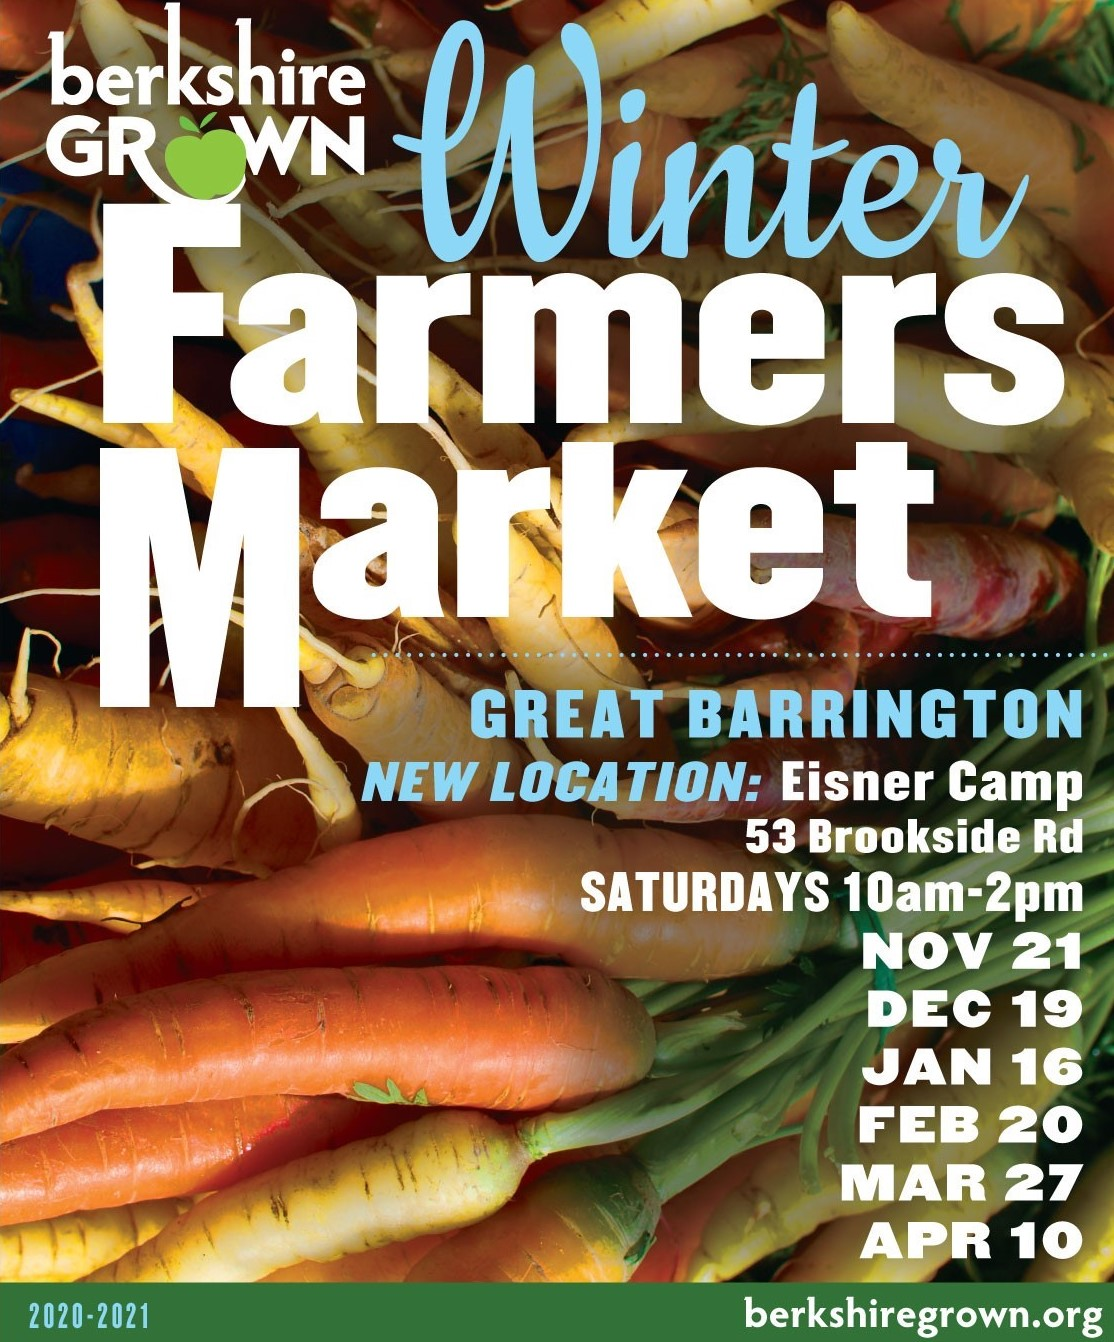 Berkshire Grown Great Barrington Winter Farmers Markets